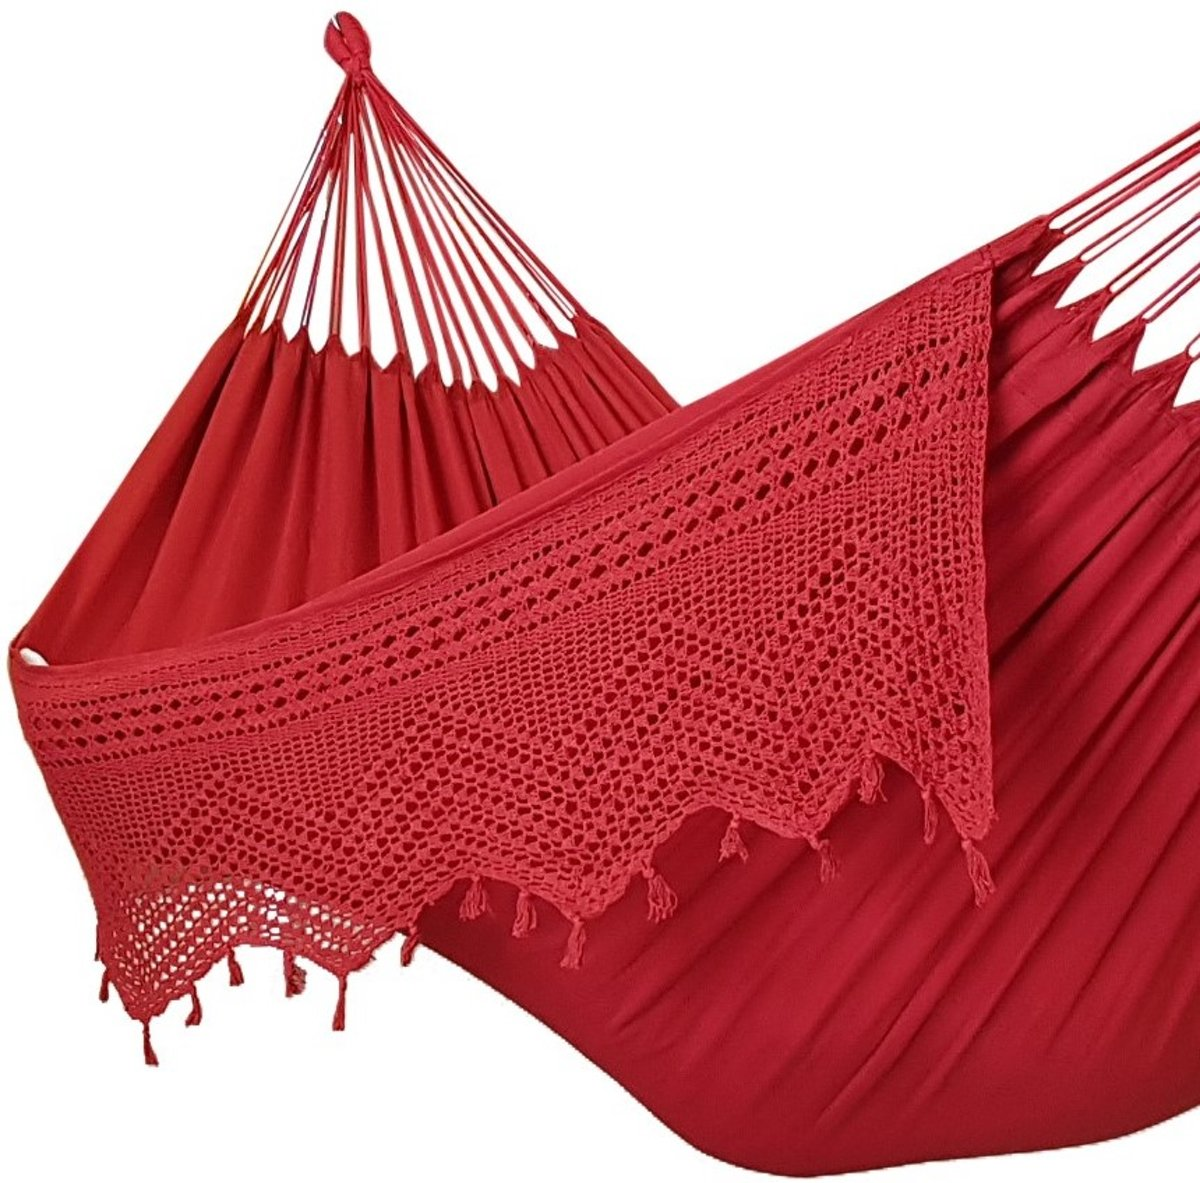 Fair Trade Hangmat XL Rood